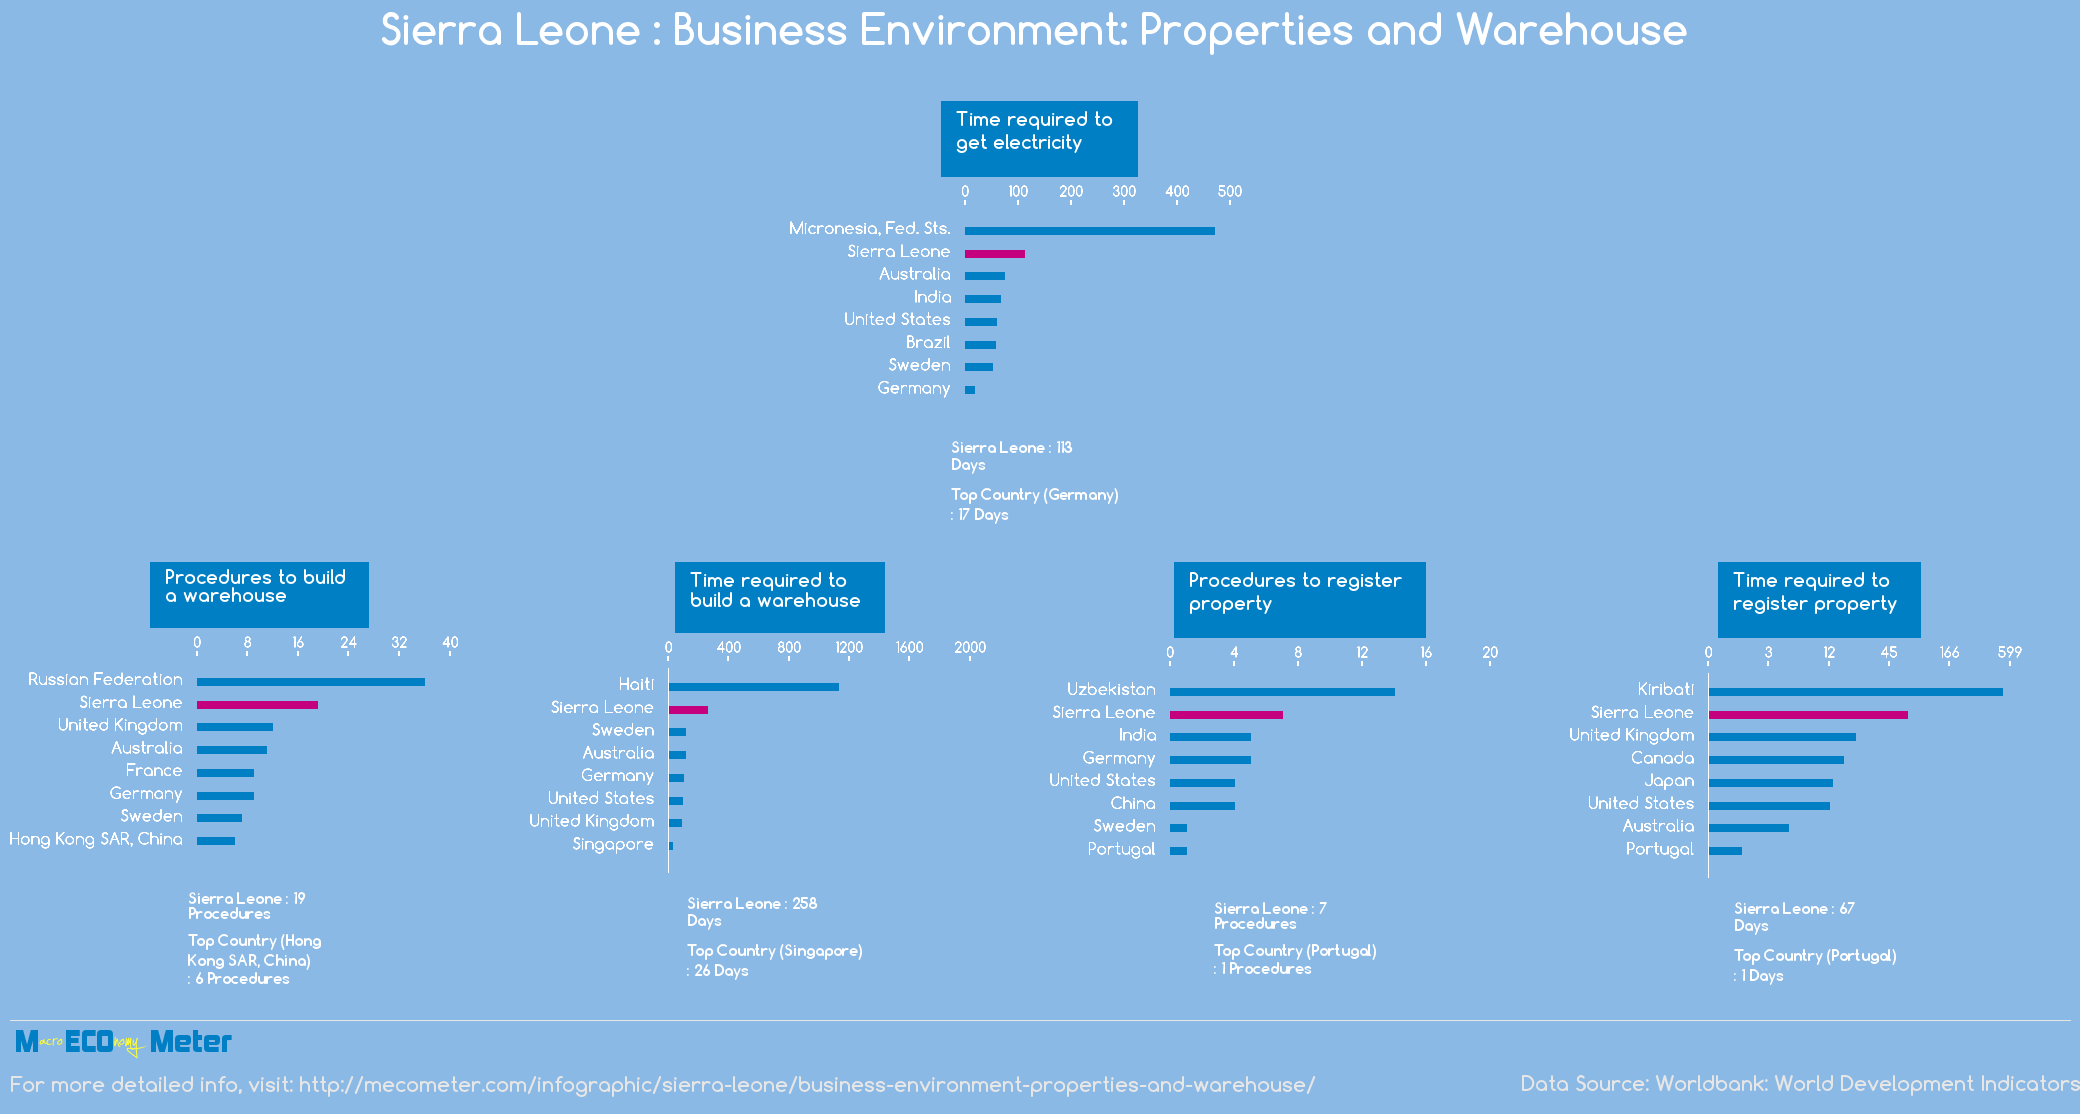 Sierra Leone : Business Environment: Properties and Warehouse